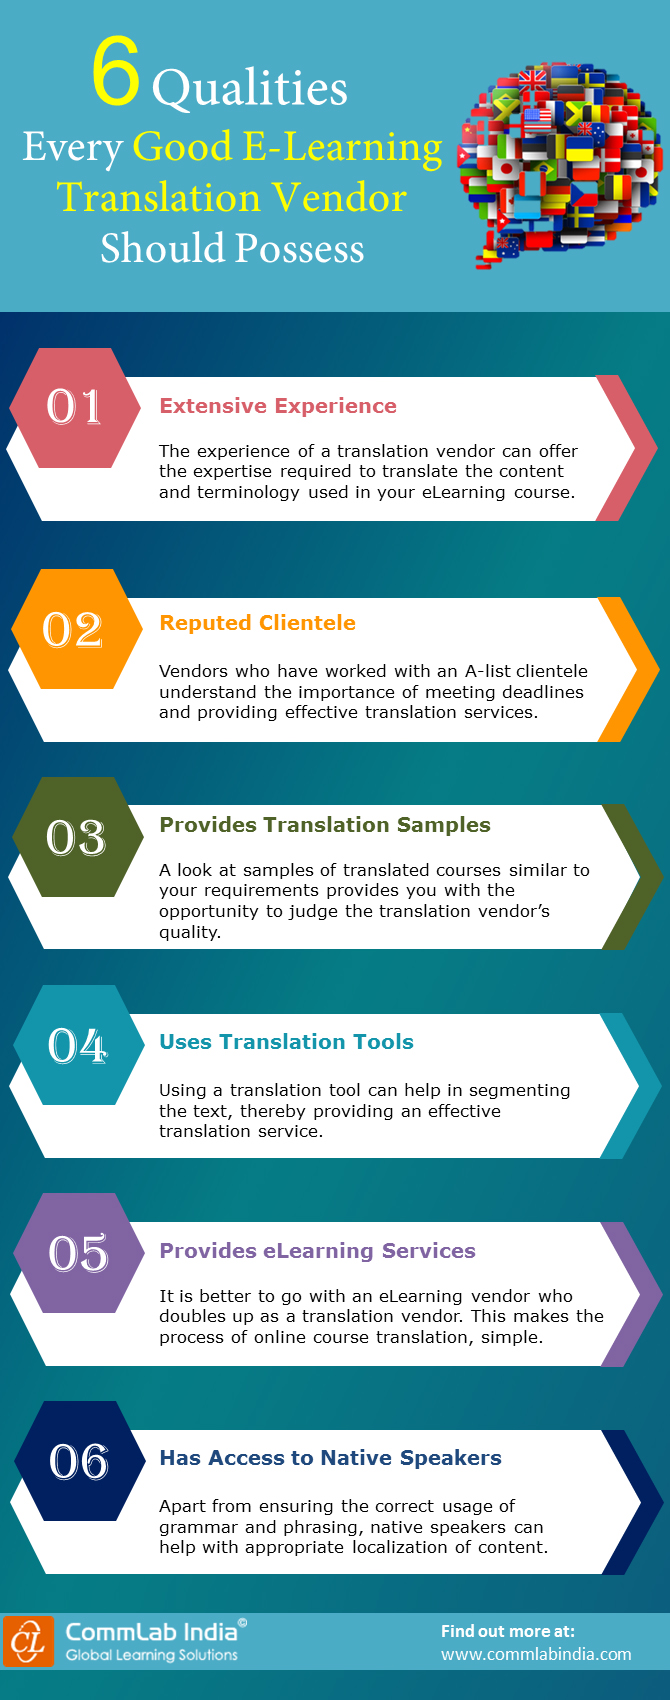 6 Qualities Every Good E-learning Translation Vendor Should Possess [Infographic]